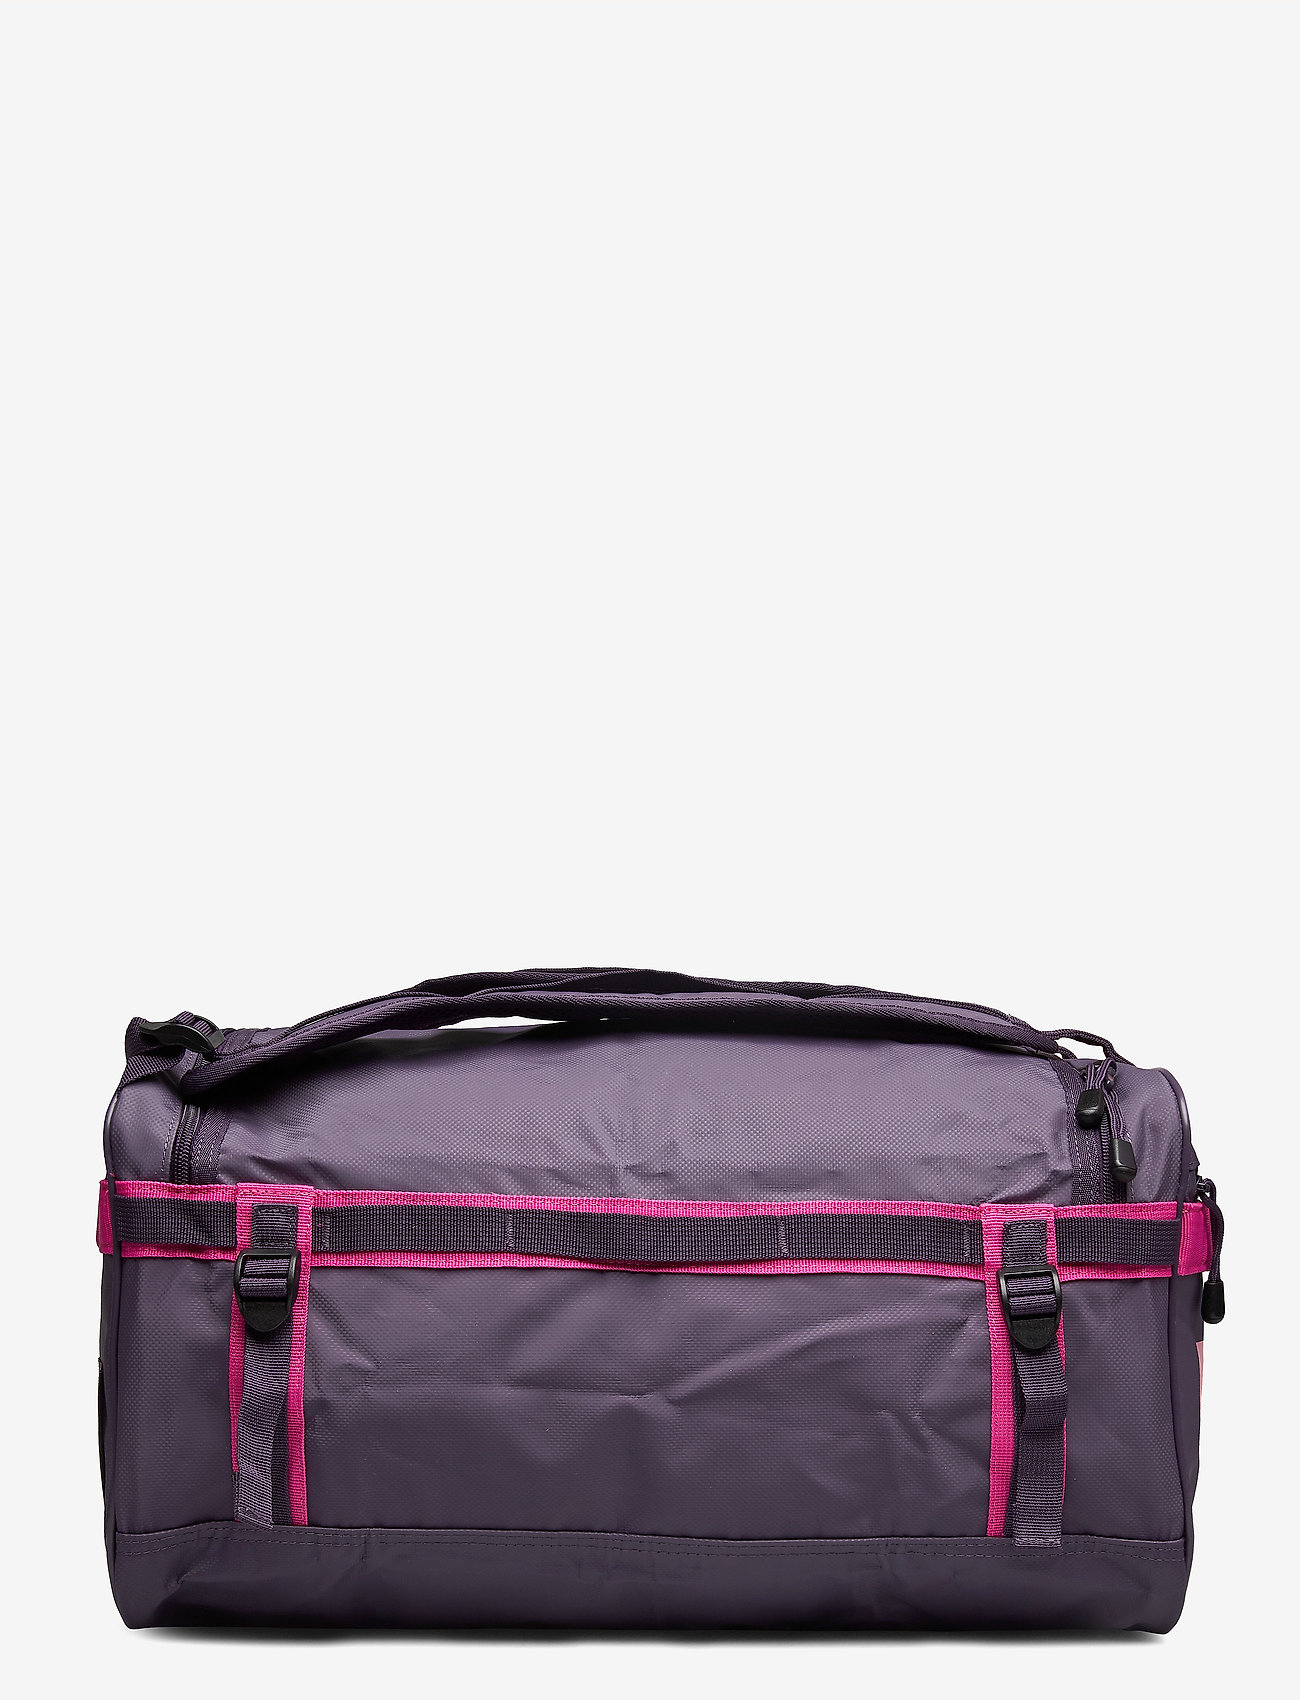 Helly Hansen - HH NEW CLASSIC DUFFEL BAG XS - sacs d'entraînement - nightshade - 1